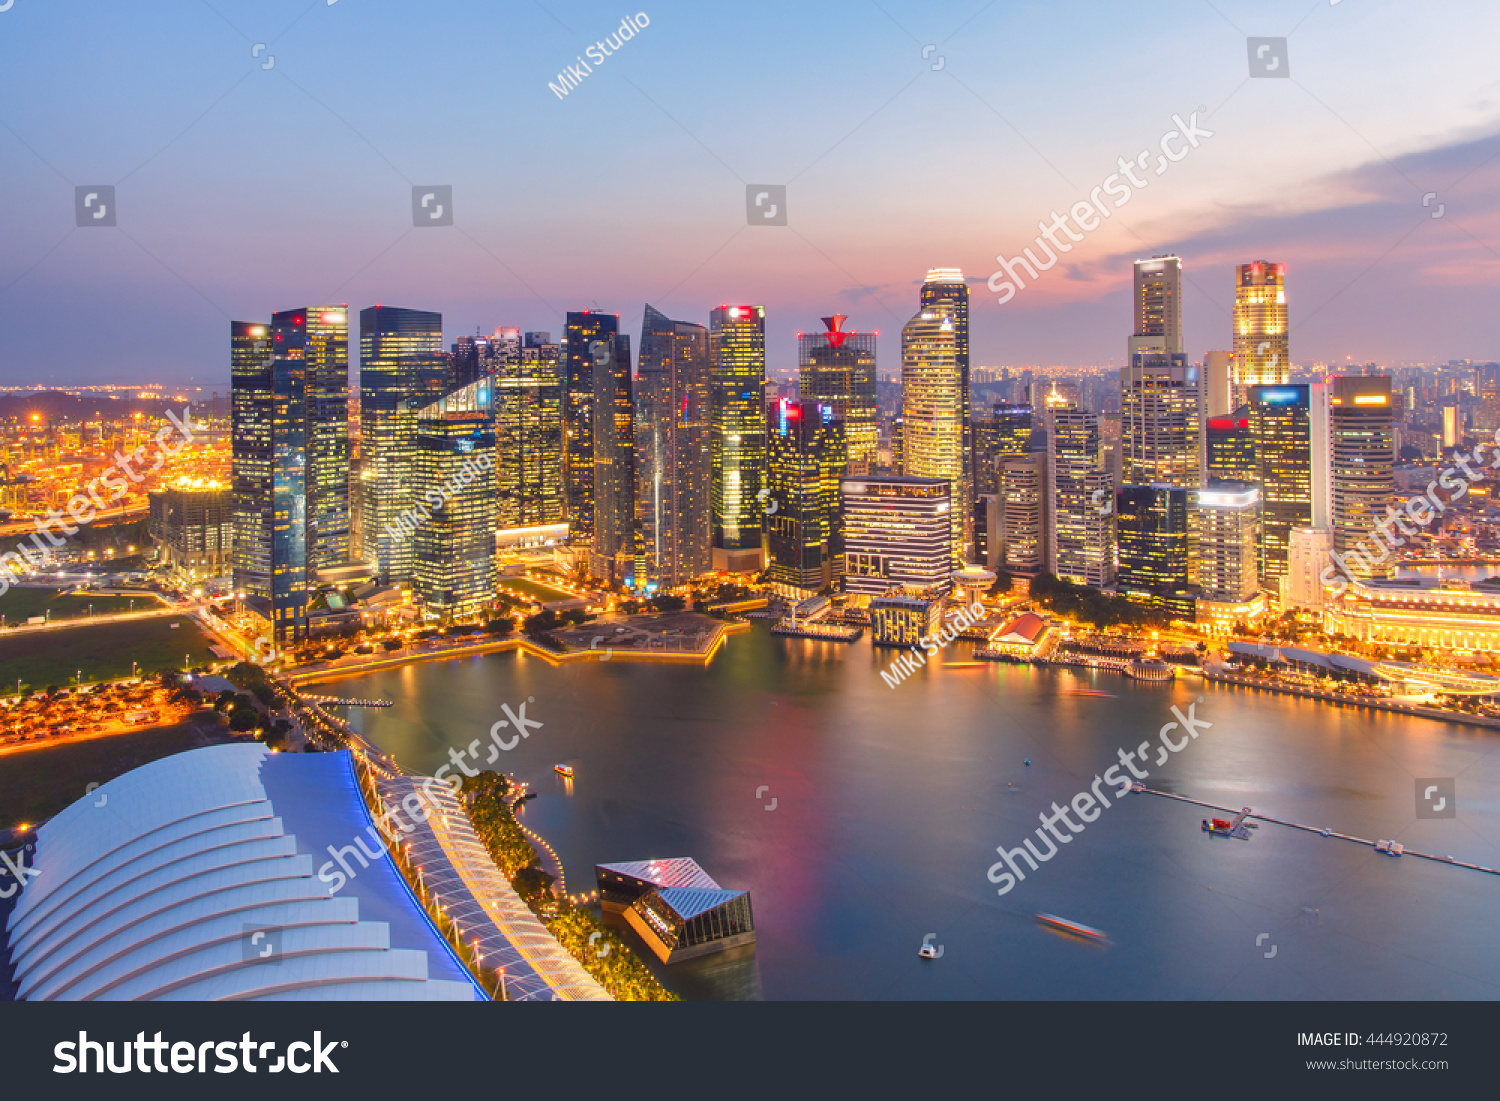 Landscape of the Singapore financial district and business building. #444920872